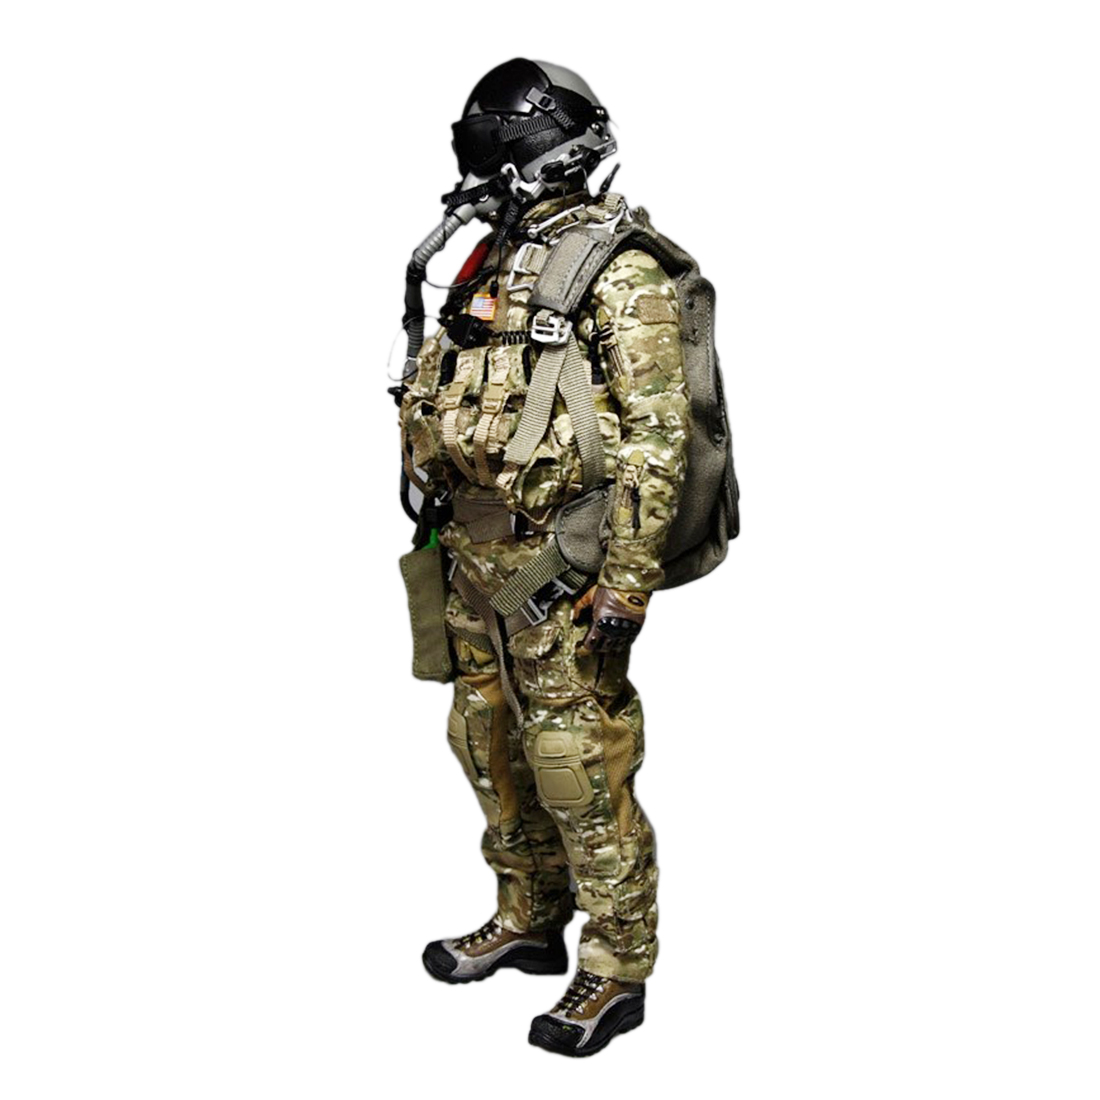 Body And Head Not Included Preventing Hairs From Graying And Helpful To Retain Complexion Veryhot Soldier Model Suit Special Forces Clothes Equipment For 1/6 12 Inch Soldier Model